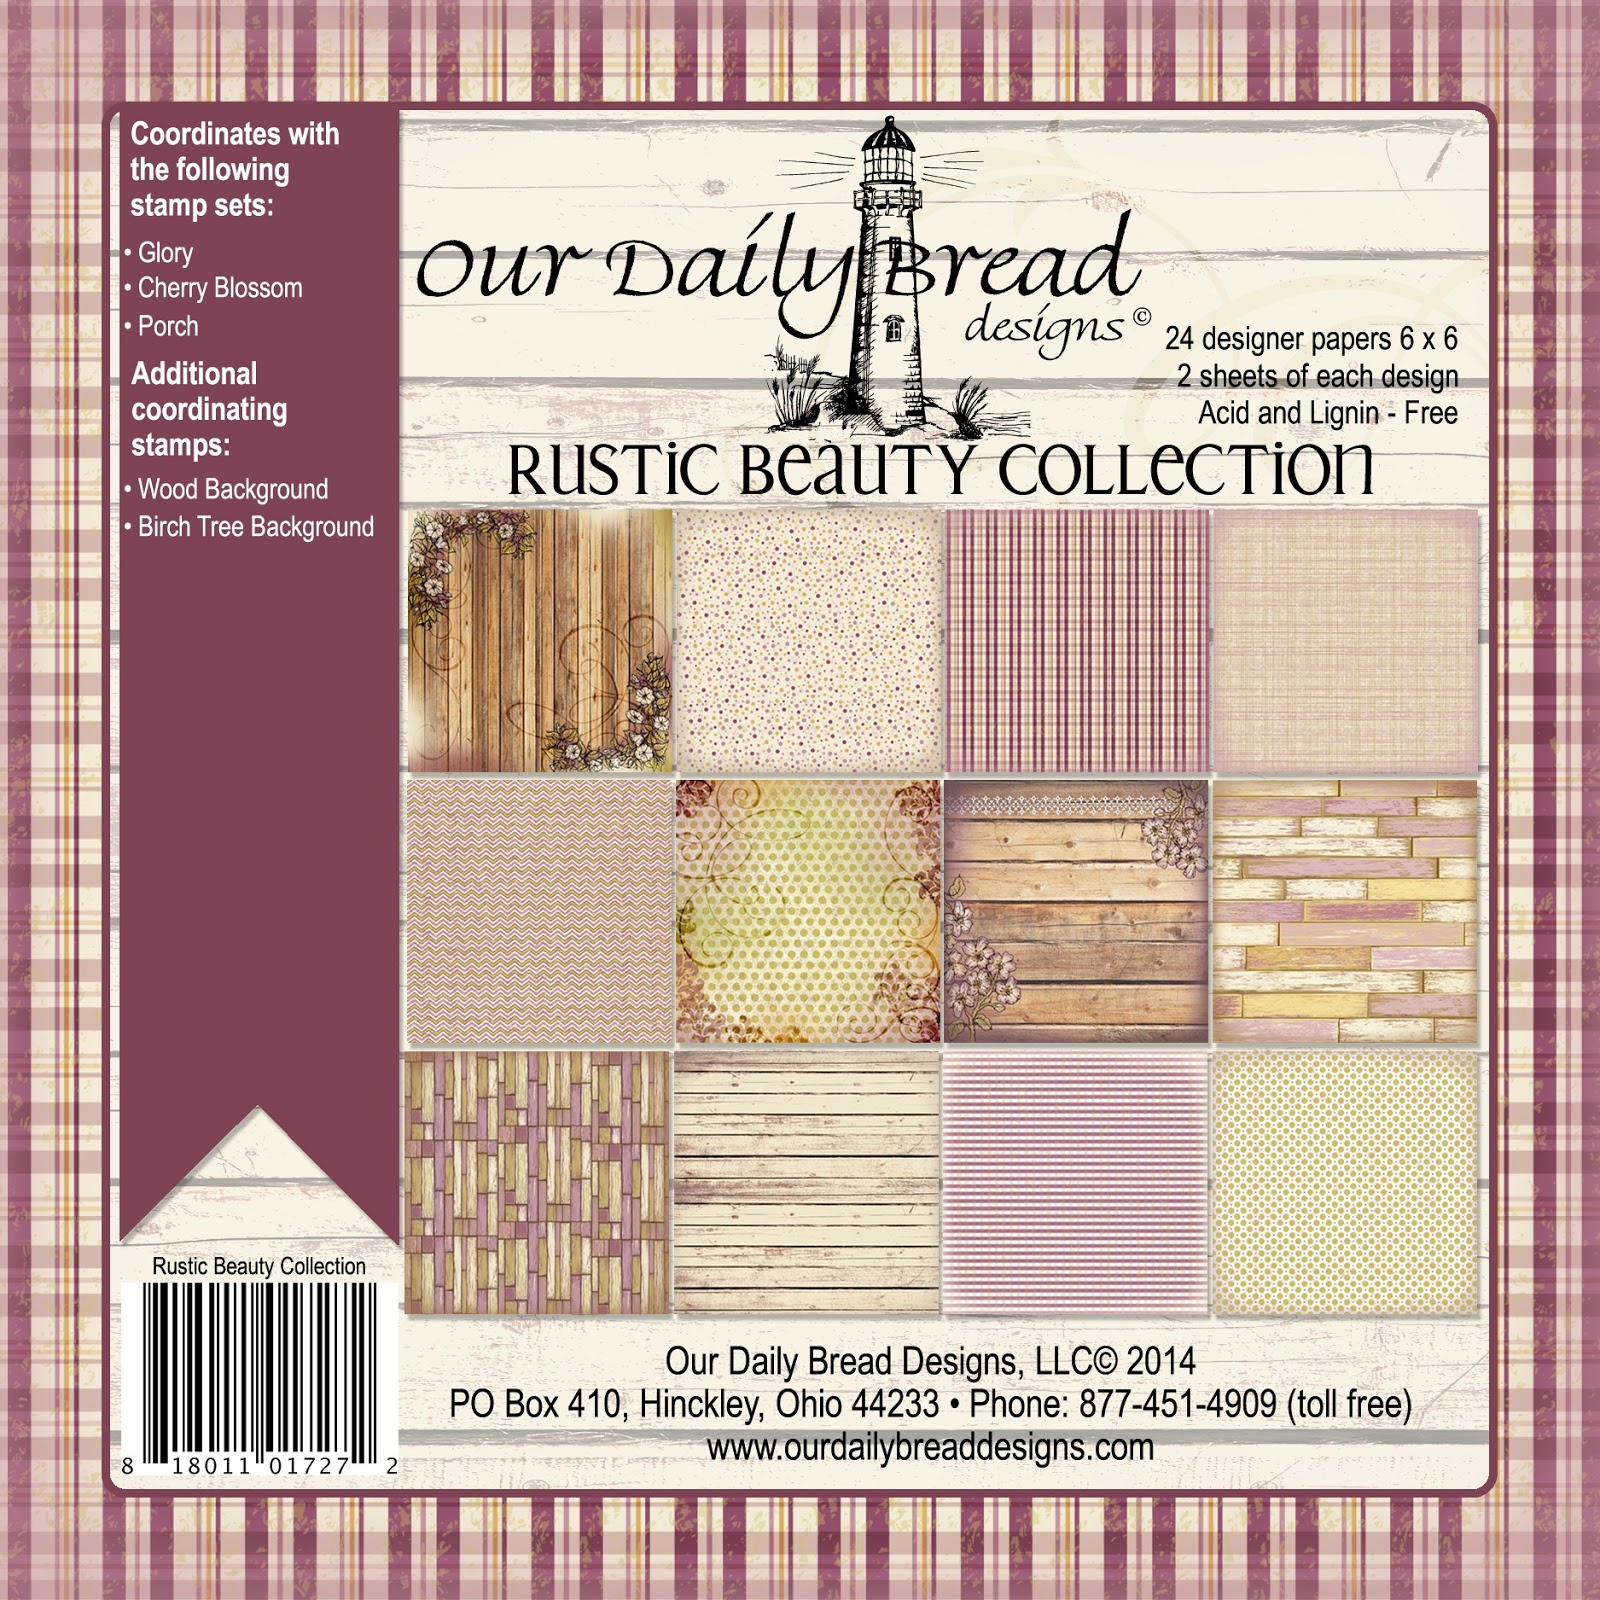 https://www.ourdailybreaddesigns.com/index.php/rustic-beauty-6x6-paper-pad.html